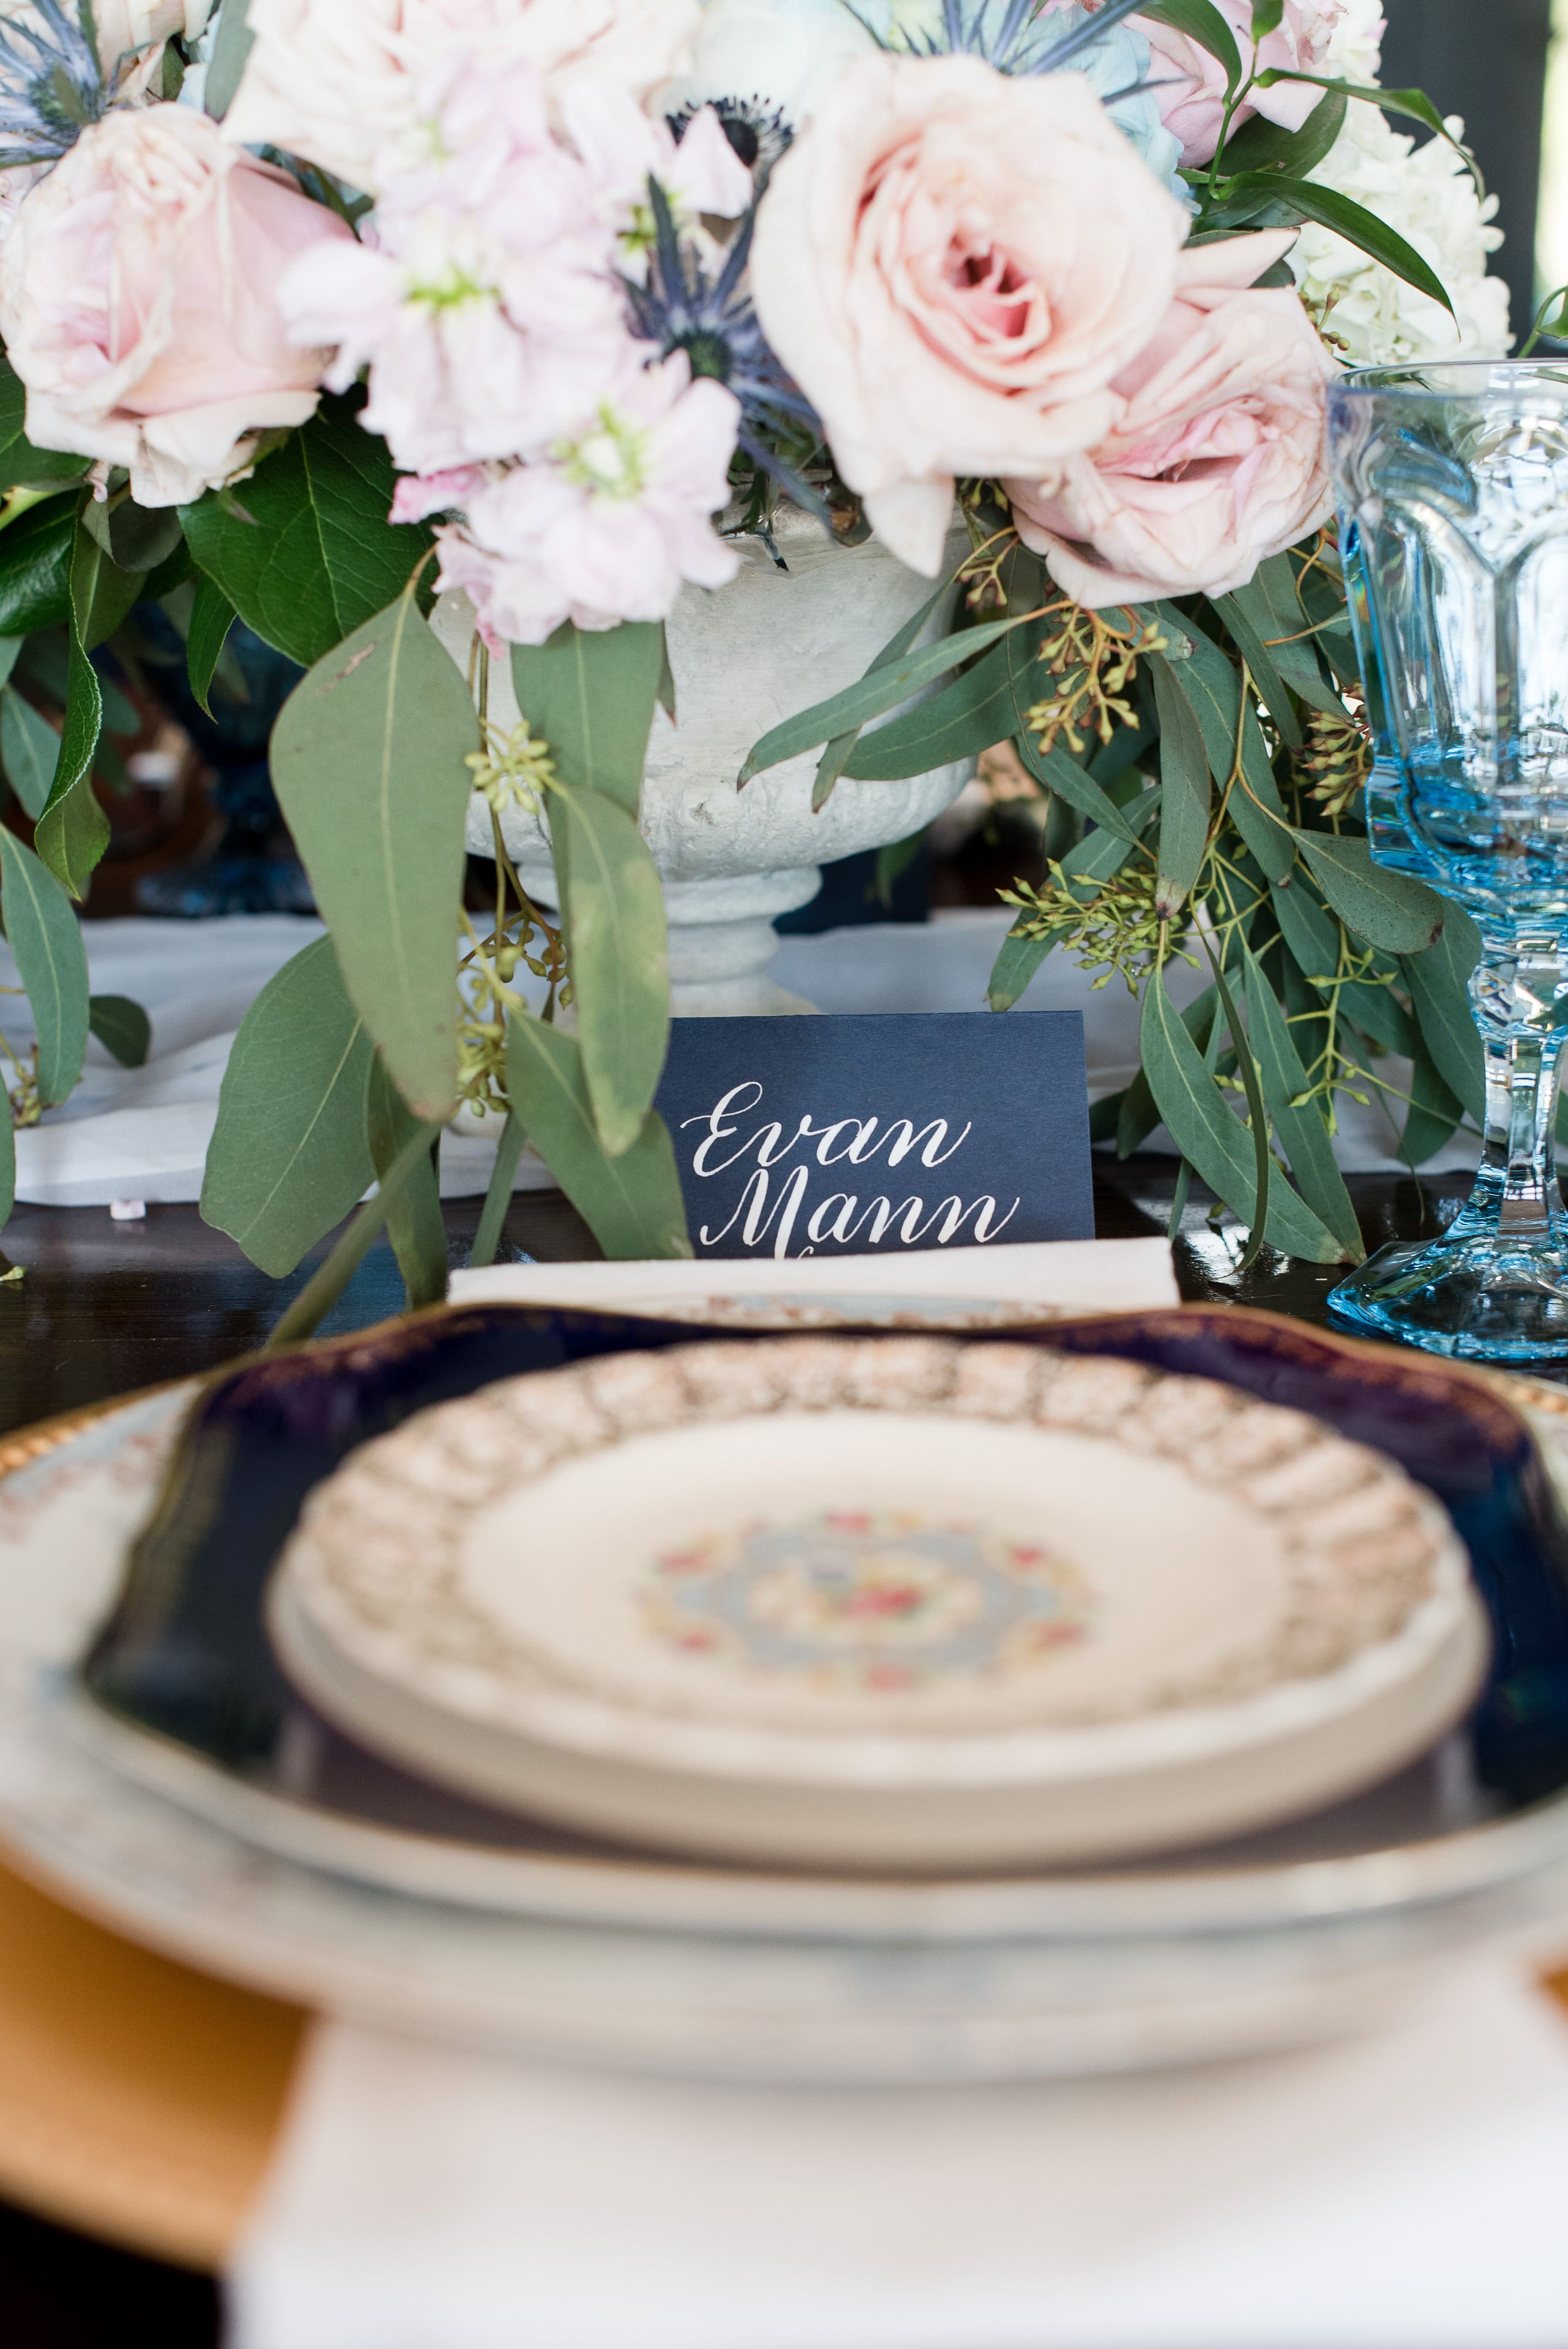 French blue place setting complete with navy place card and vintage china captured by Charlotte Wedding Collective